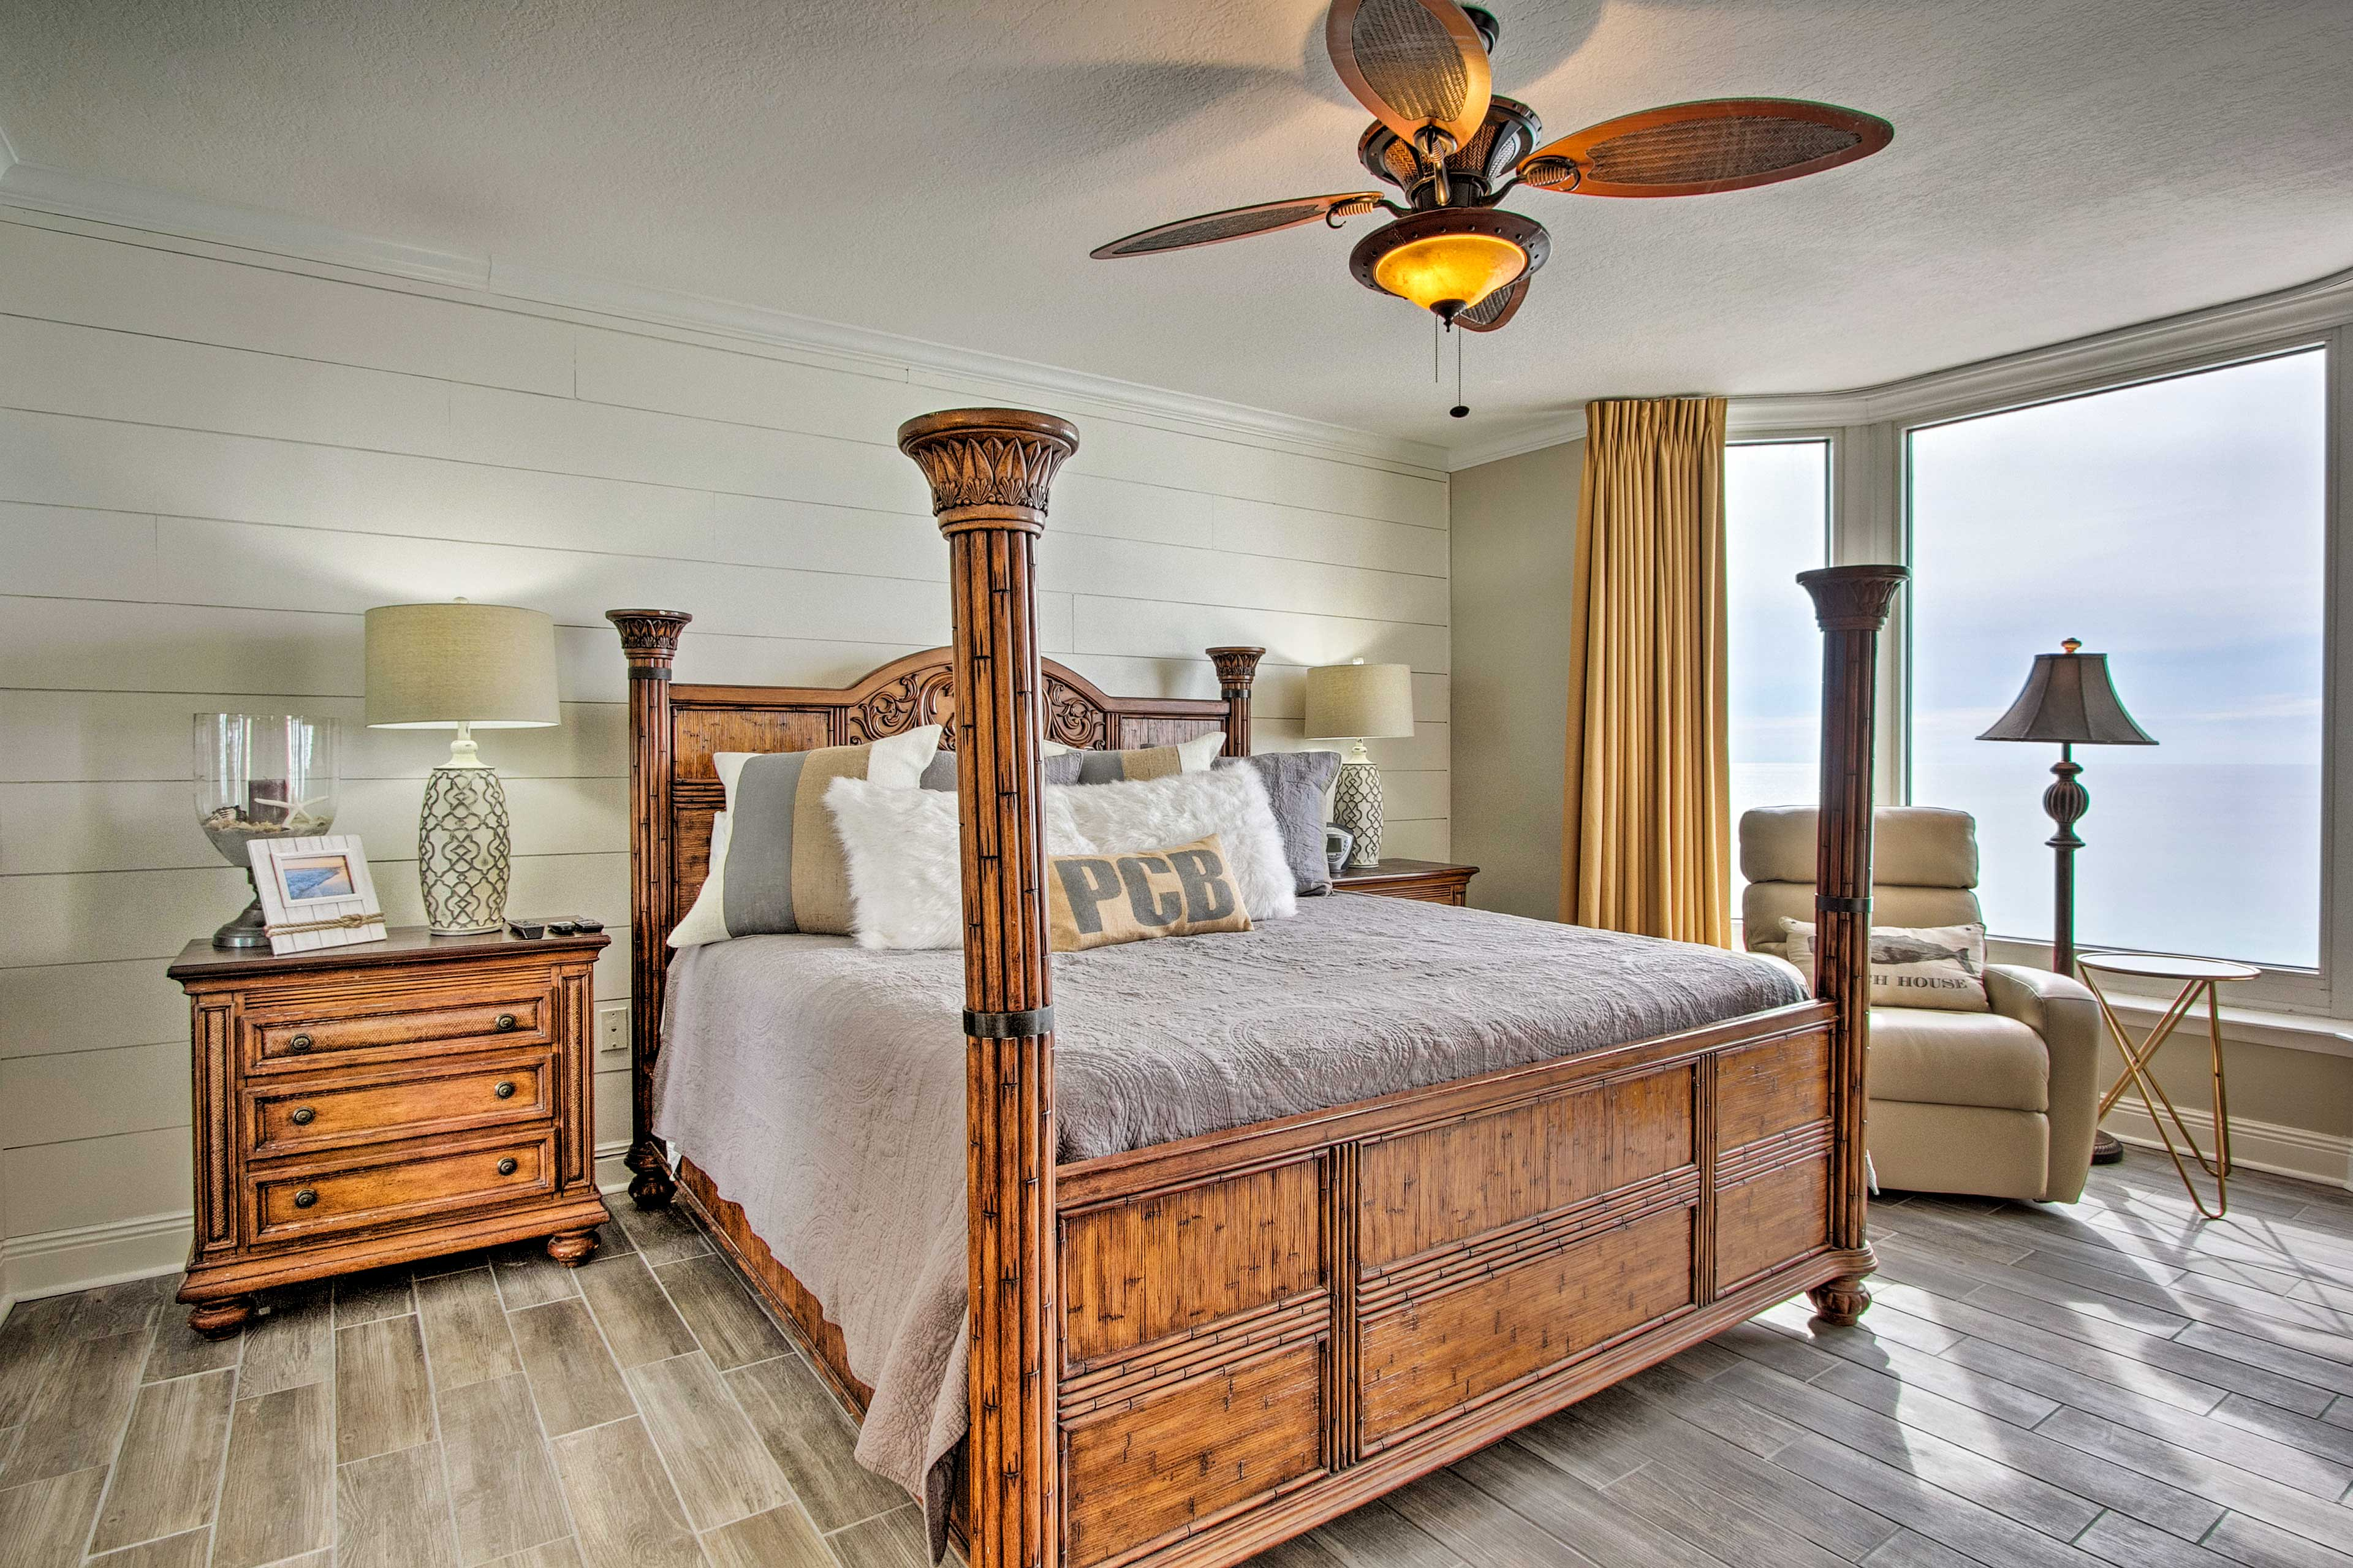 The master bedroom boasts wonderful views and a four-poster, king-sized bed.